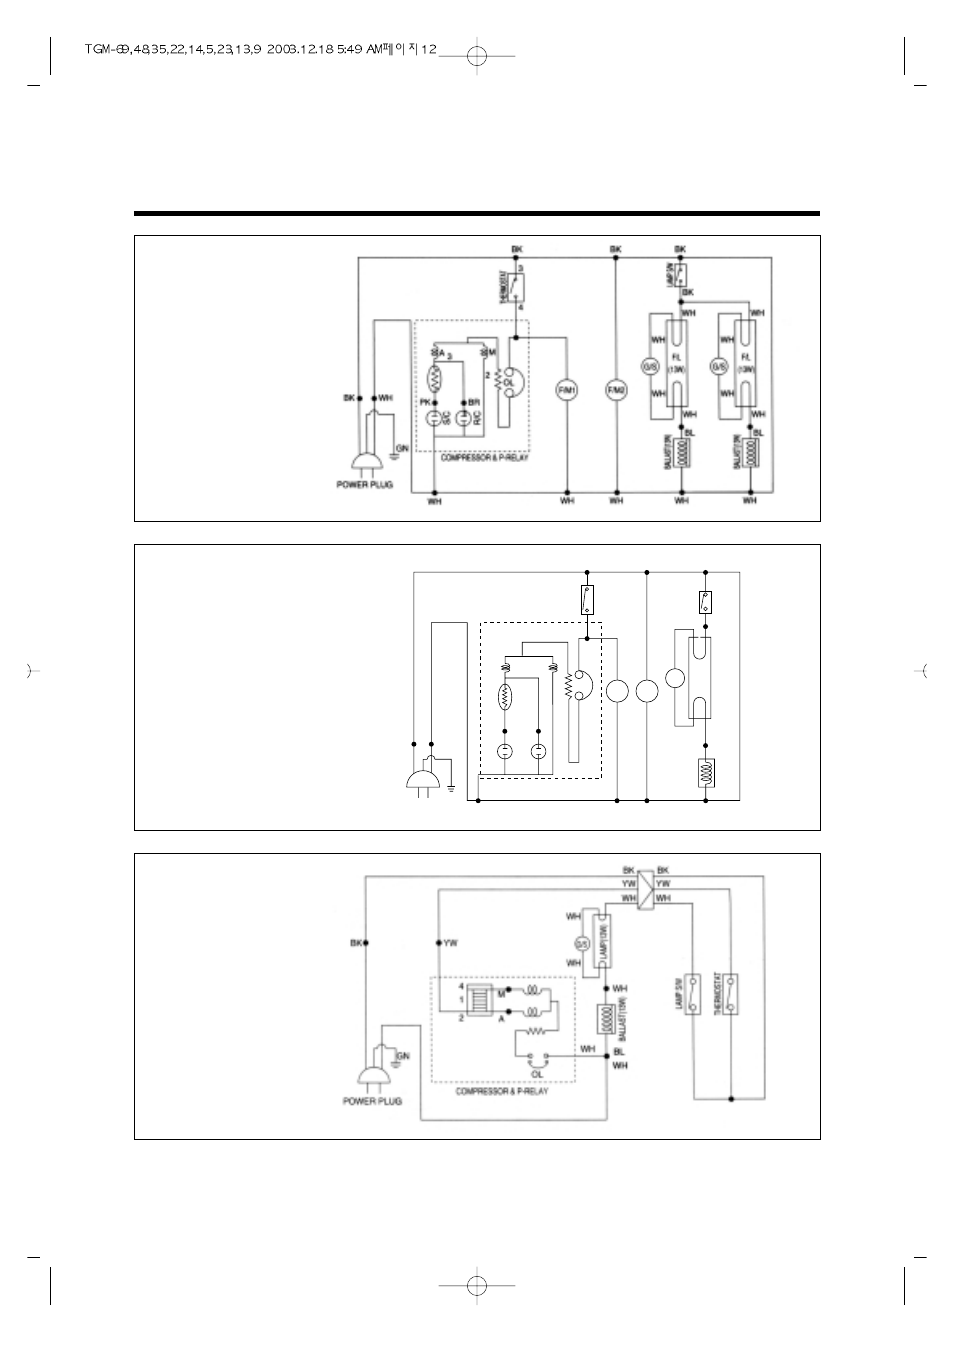 Wiring Diagram Model Tgm 14r 11r 5r Tivo Turbo Air 69r User Manual Page 15 108